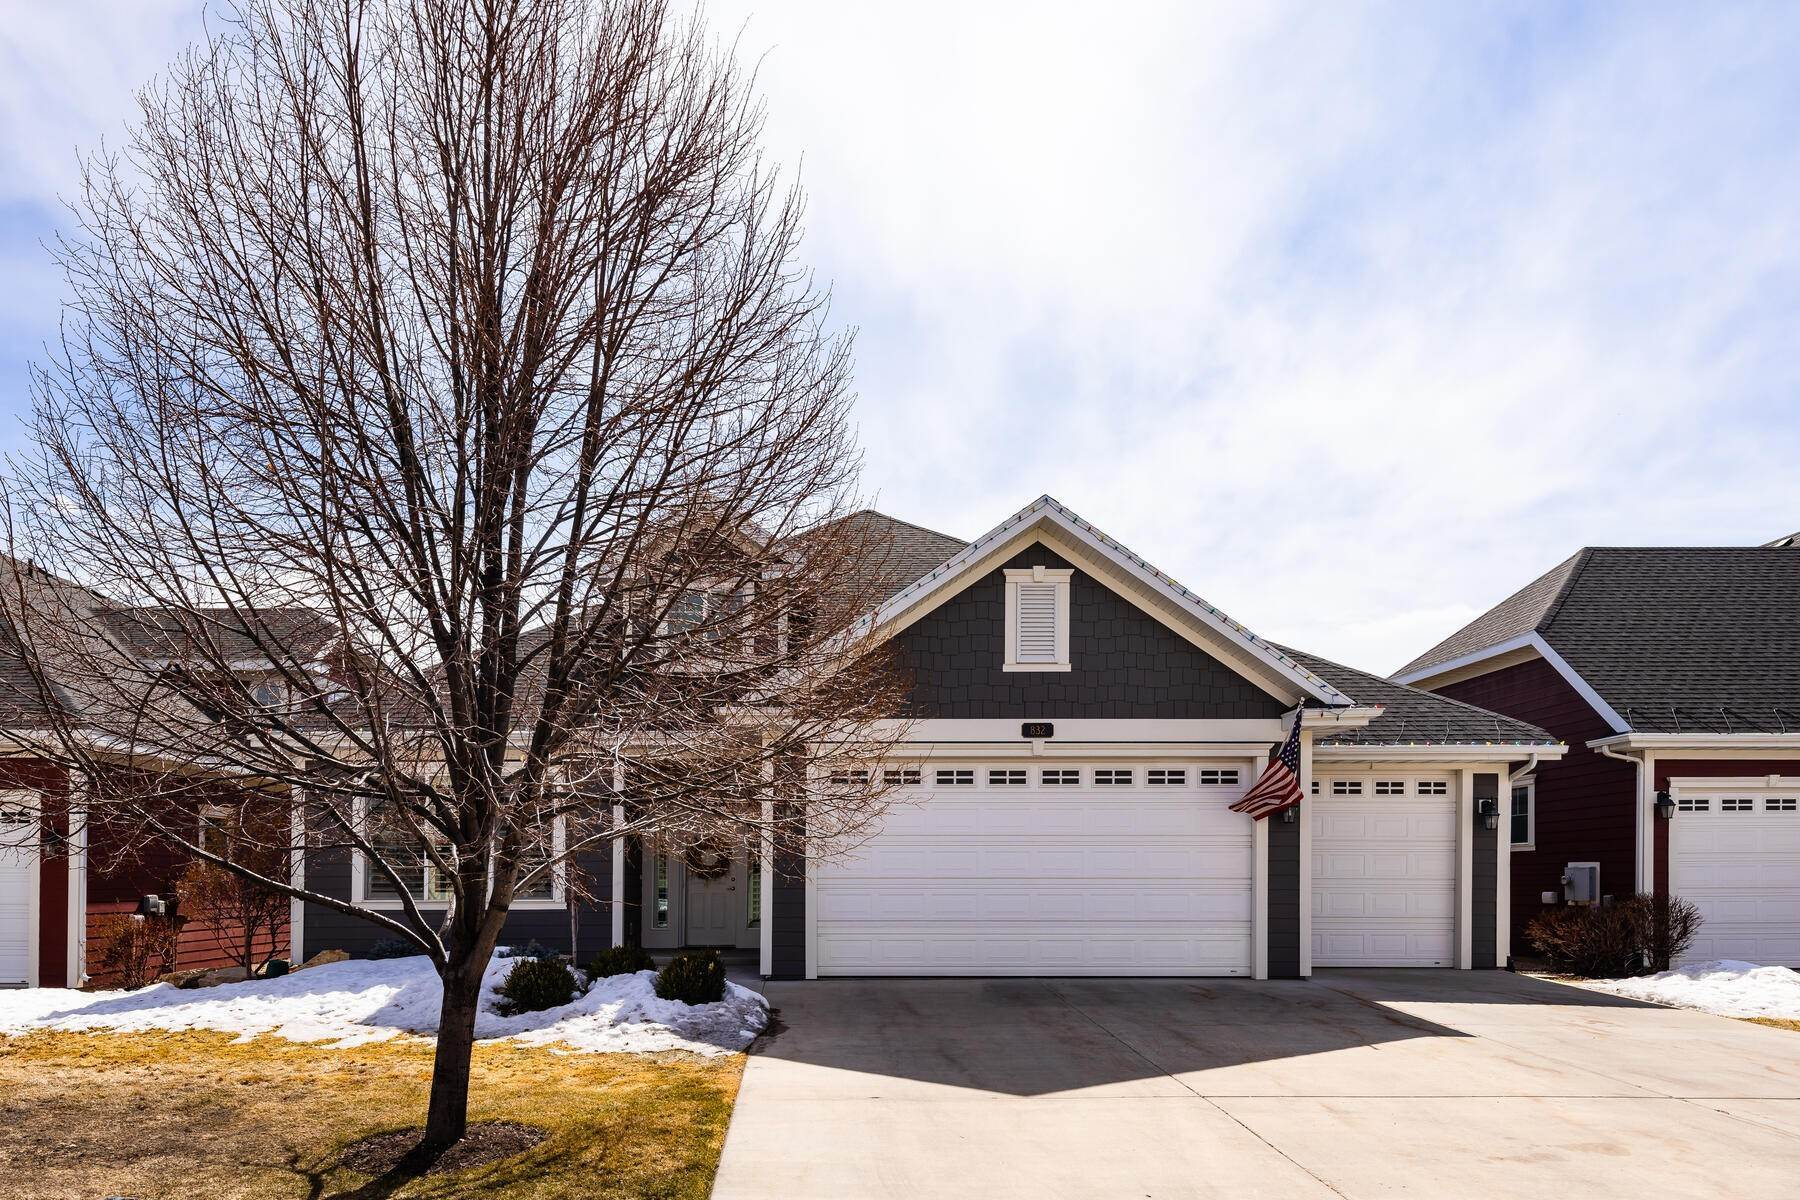 Single Family Homes for Sale at Breathtaking Updated Home in Midway with Spectacular Views! 832 N Double Eagle Drive Midway, Utah 84049 United States